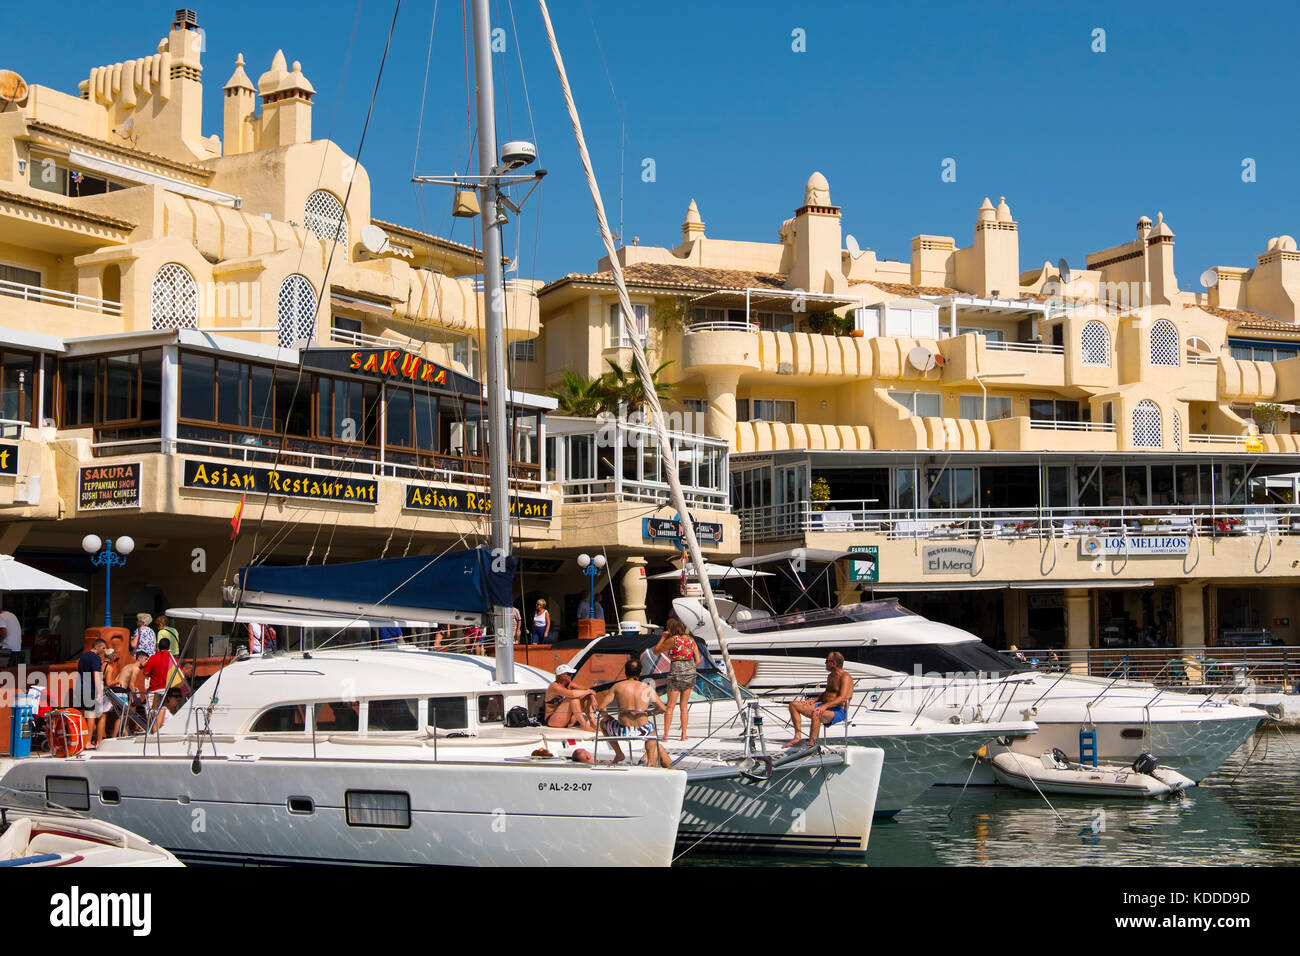 Puerto Marina, Yacht Harbour, Benalmadena. Málaga province, Costa del Sol, Andalusia. Southern Spain Europe Stock Photo